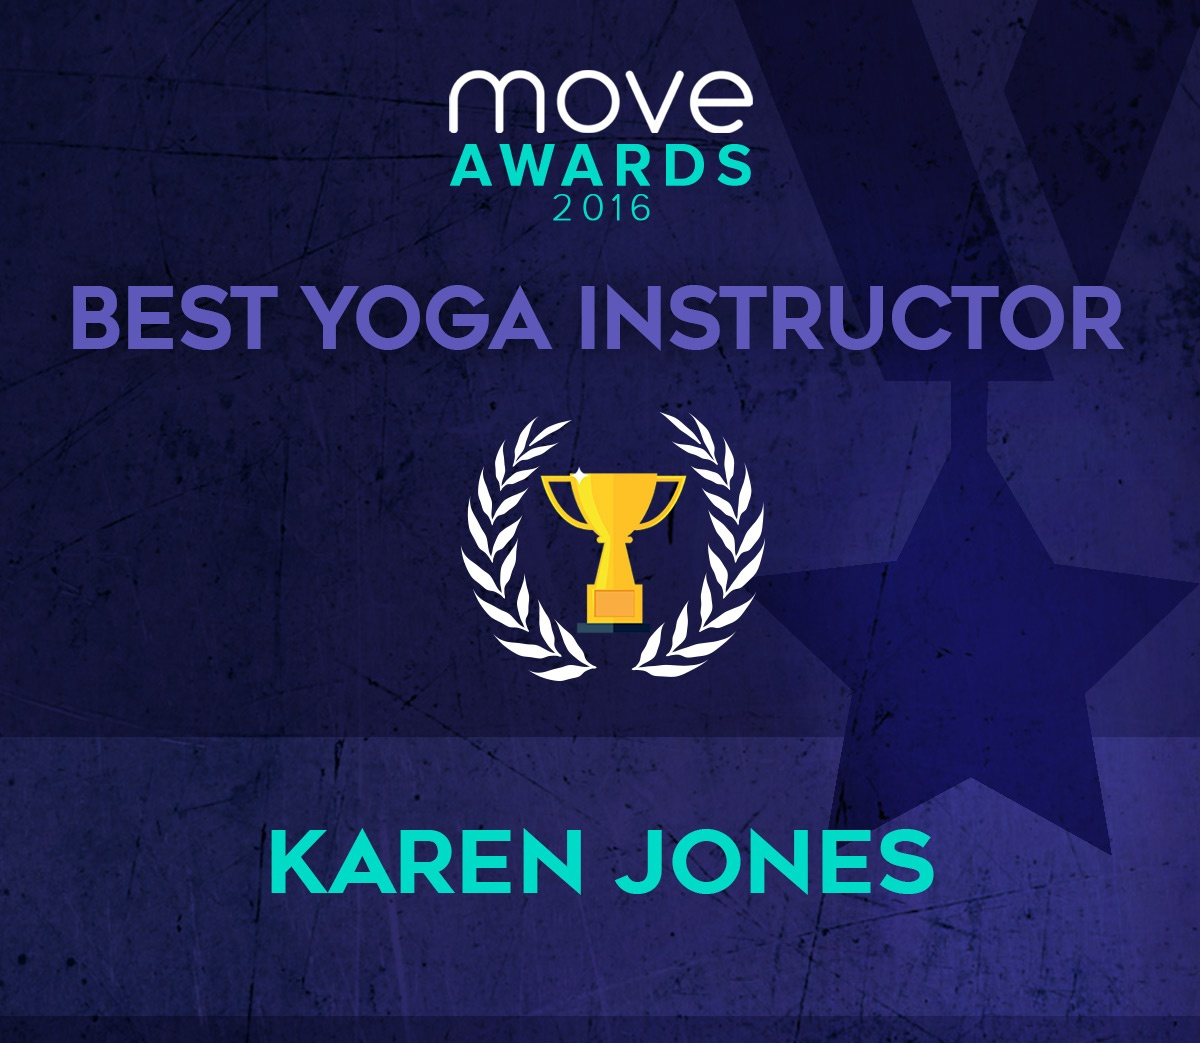 Best-Yoga-Instructor-Plymouth.jpg